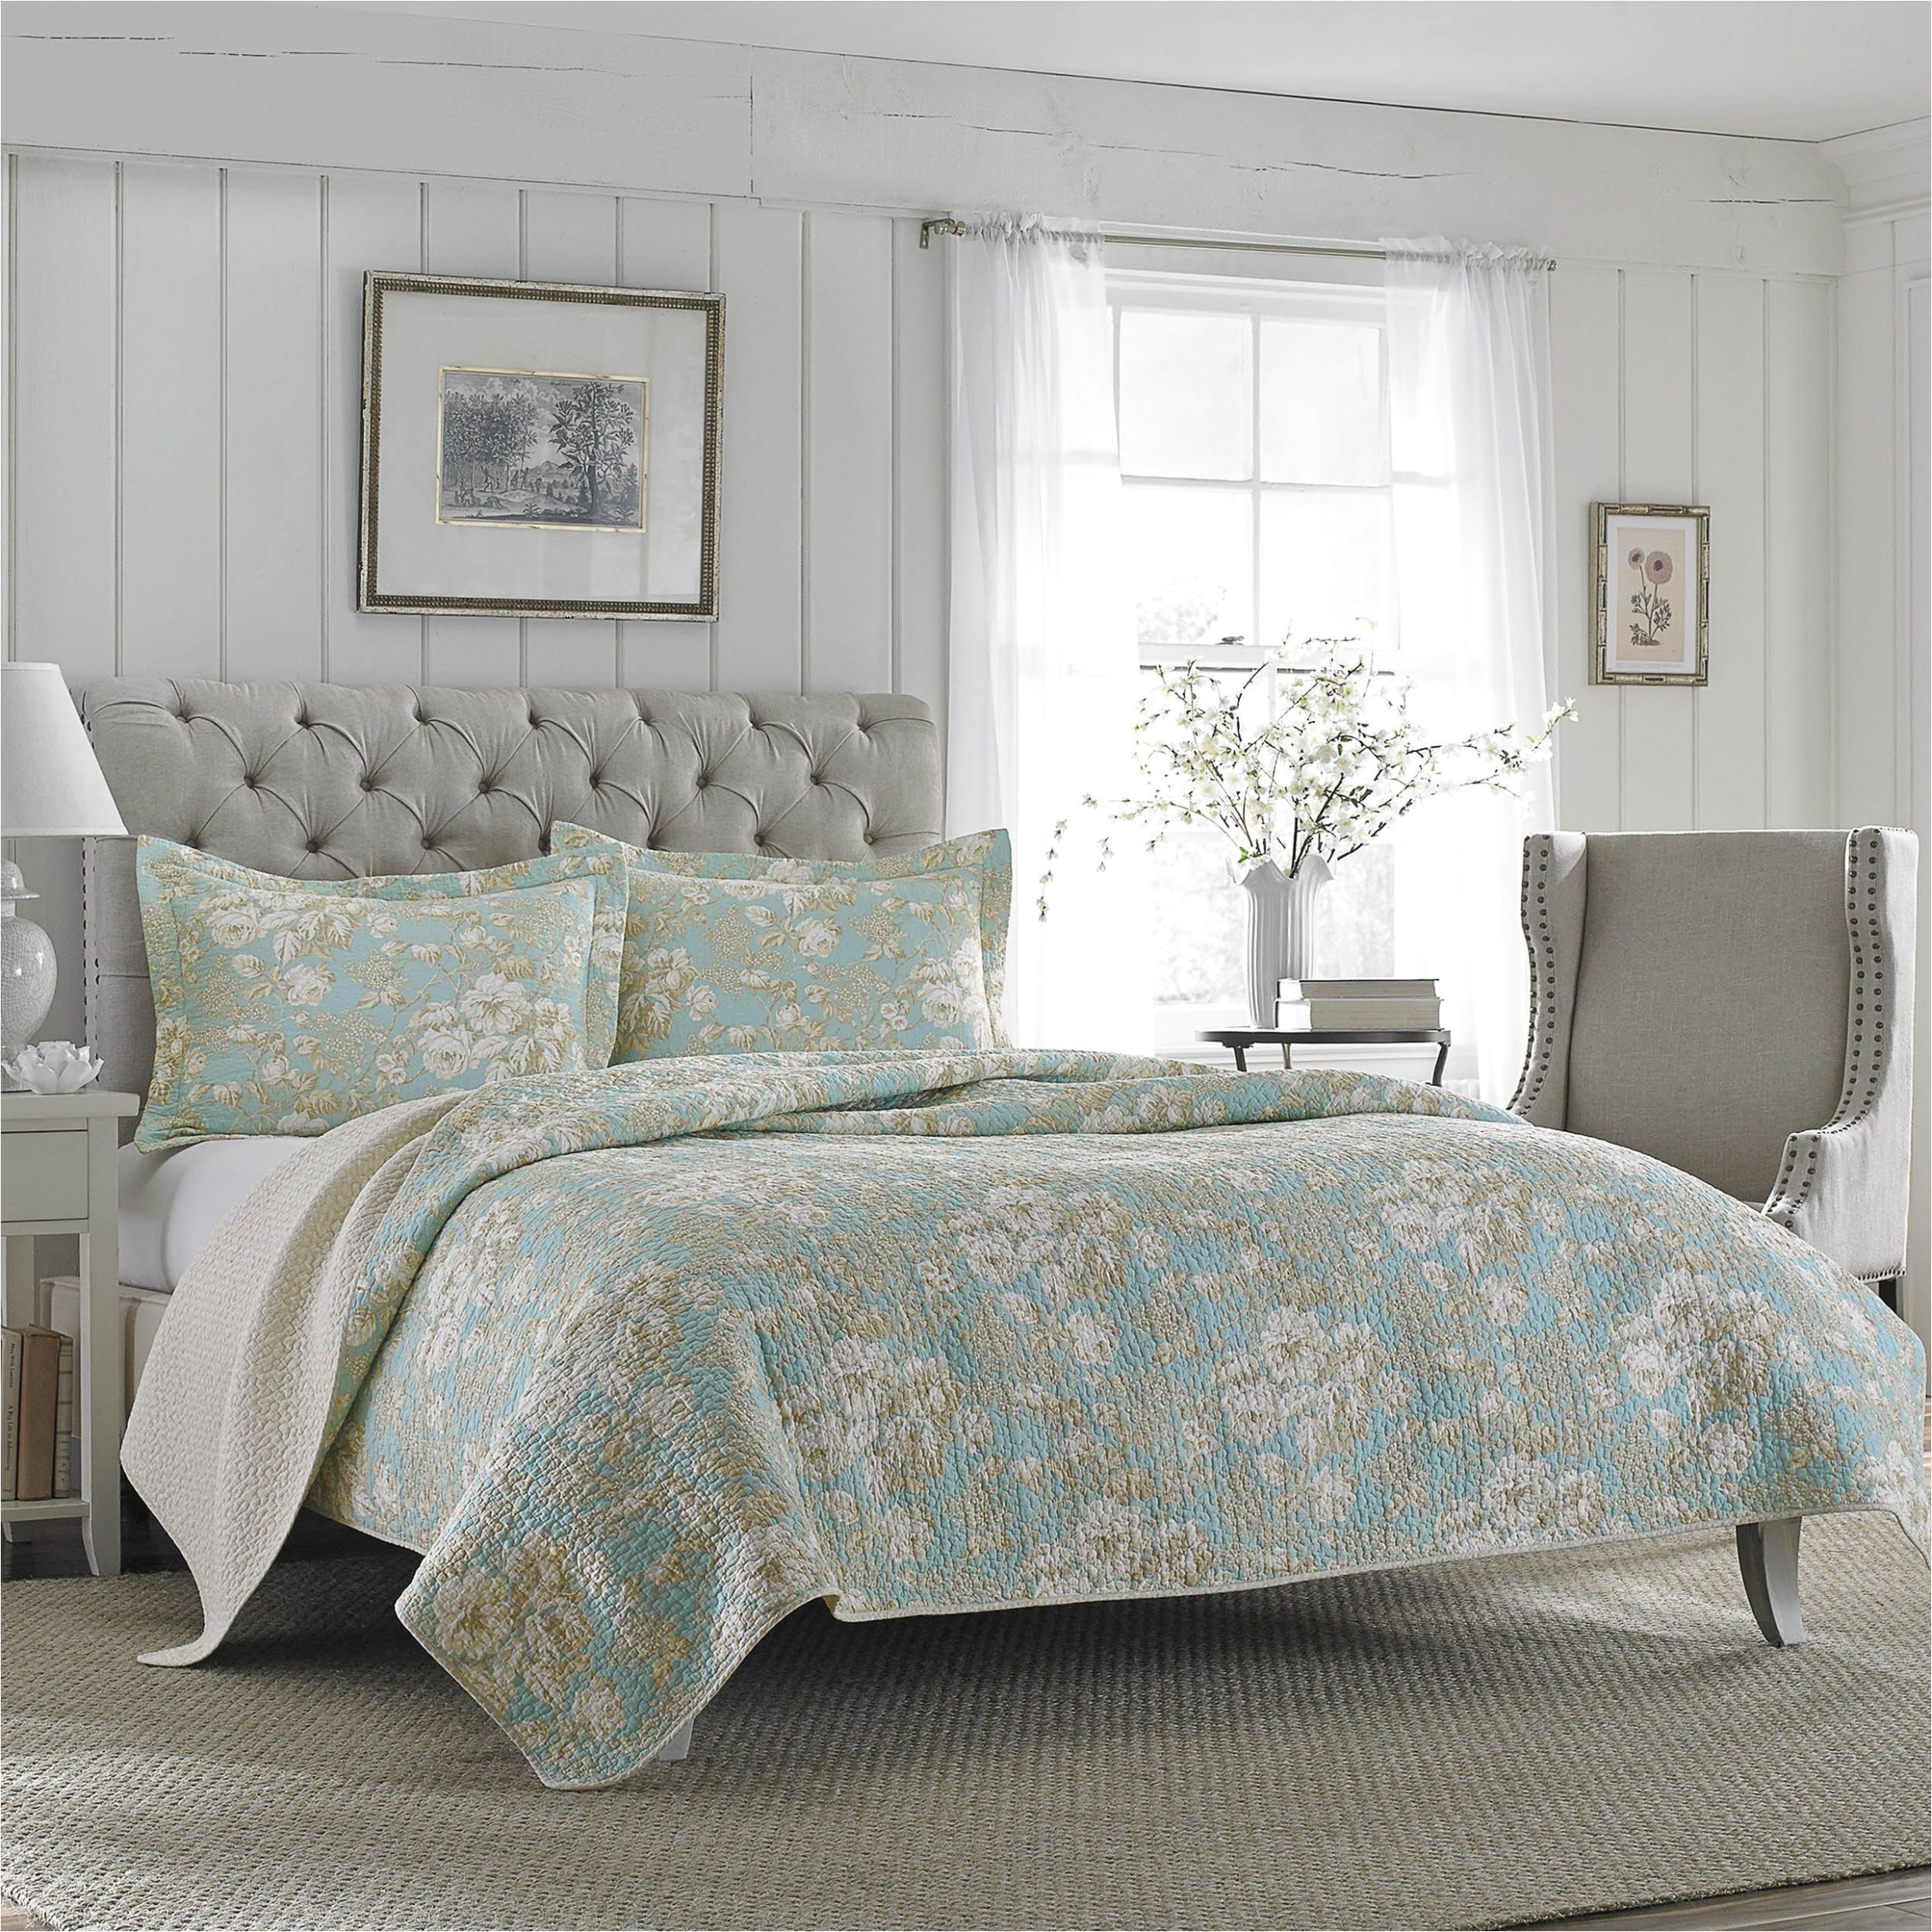 What is the Difference Between A Coverlet and A Quilt Coverlet Vs Bedspread Bedspread Black and White Bedding Sets Great